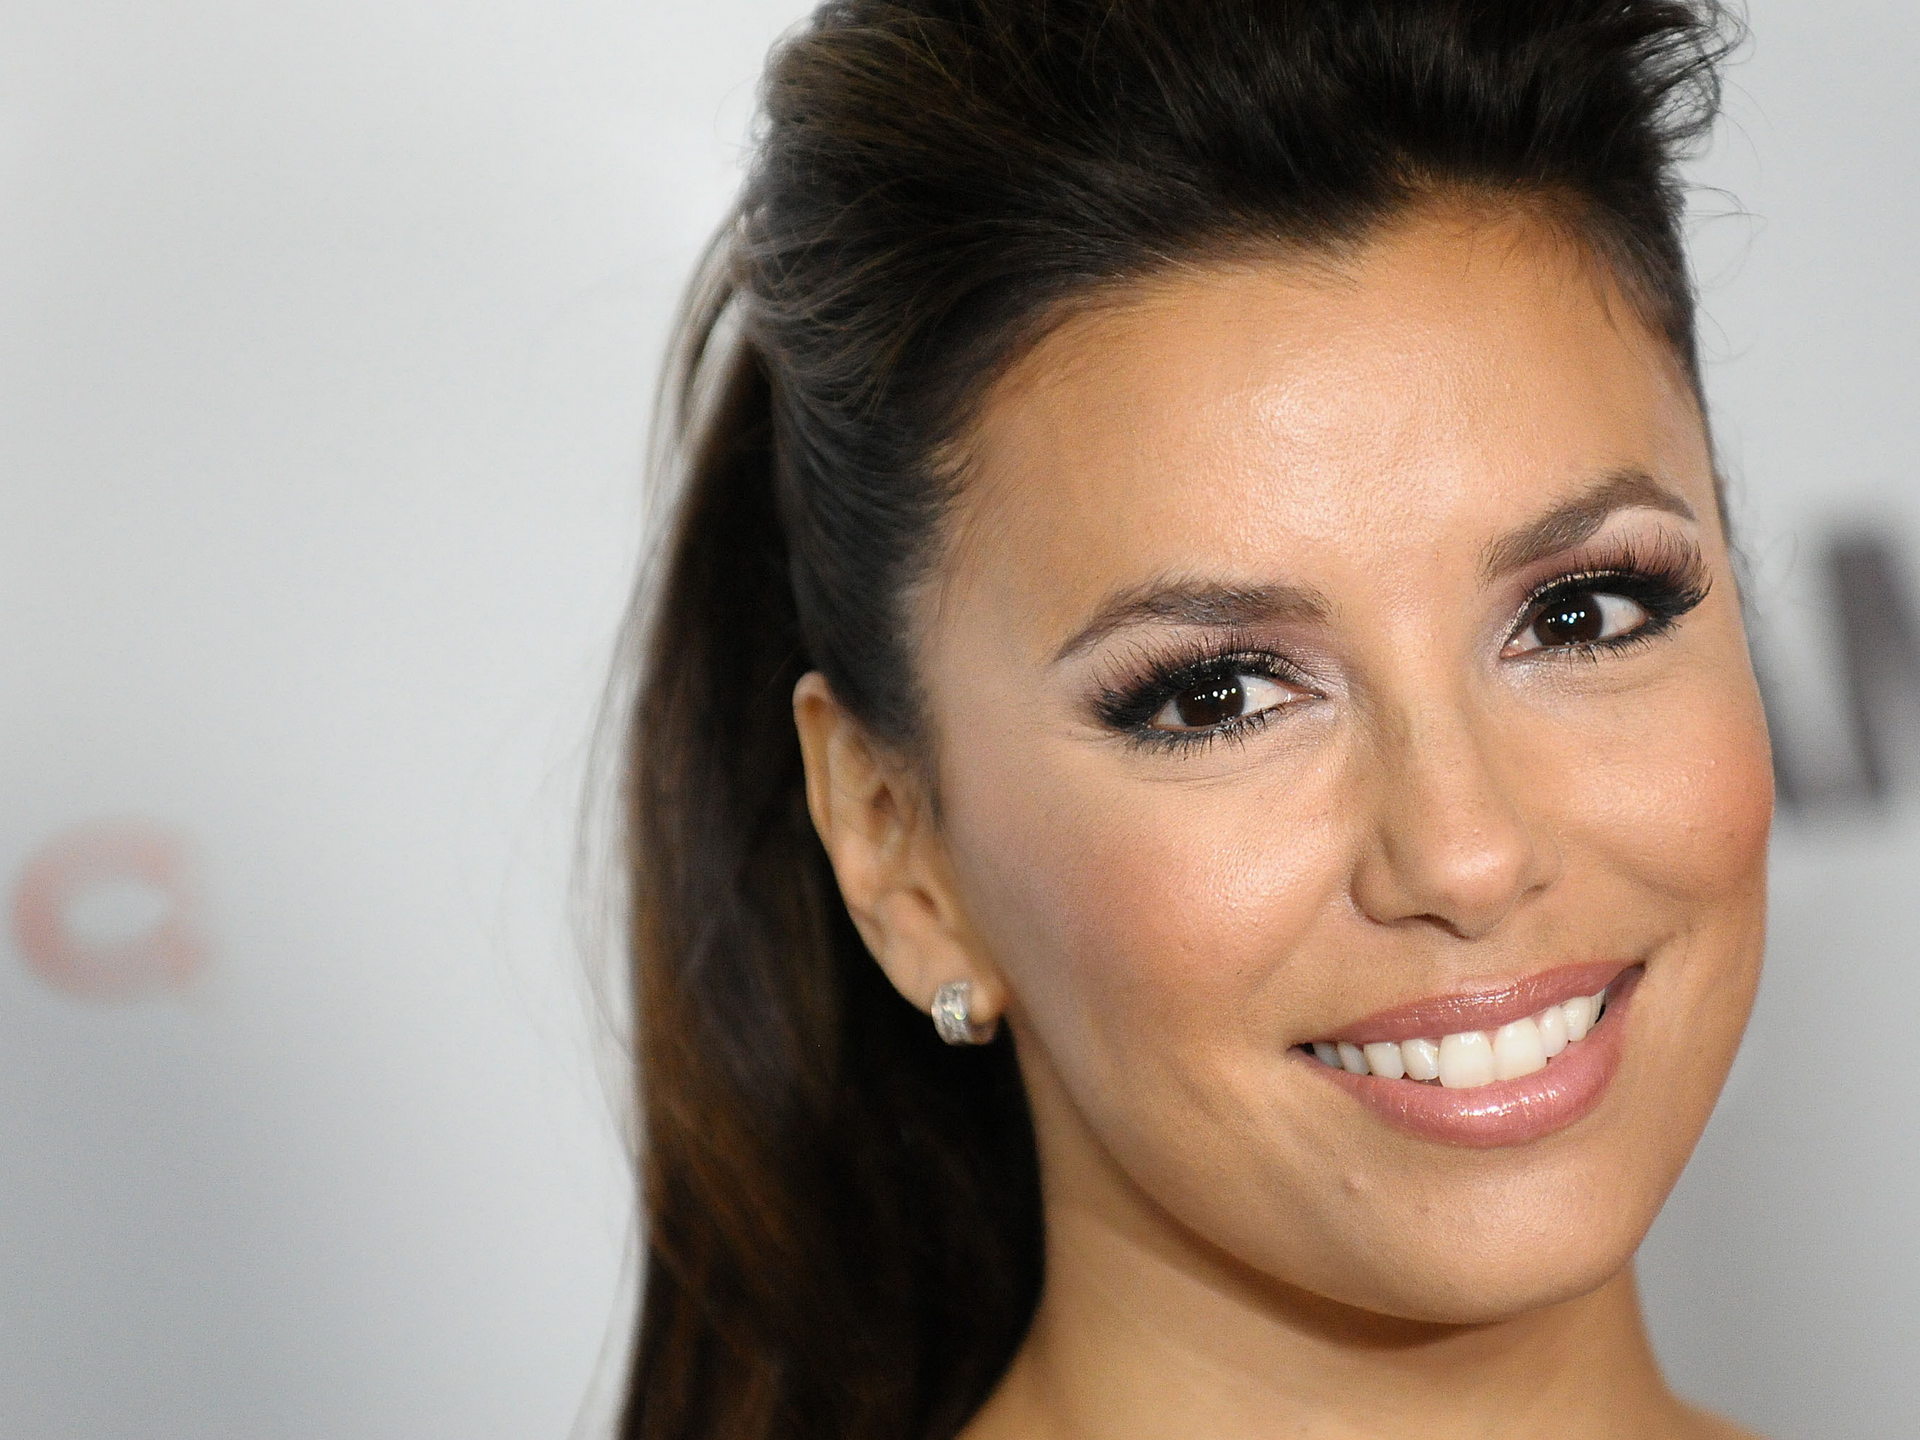 wonderful eva longoria nice smiling face look pose hd desktop mobile free background images